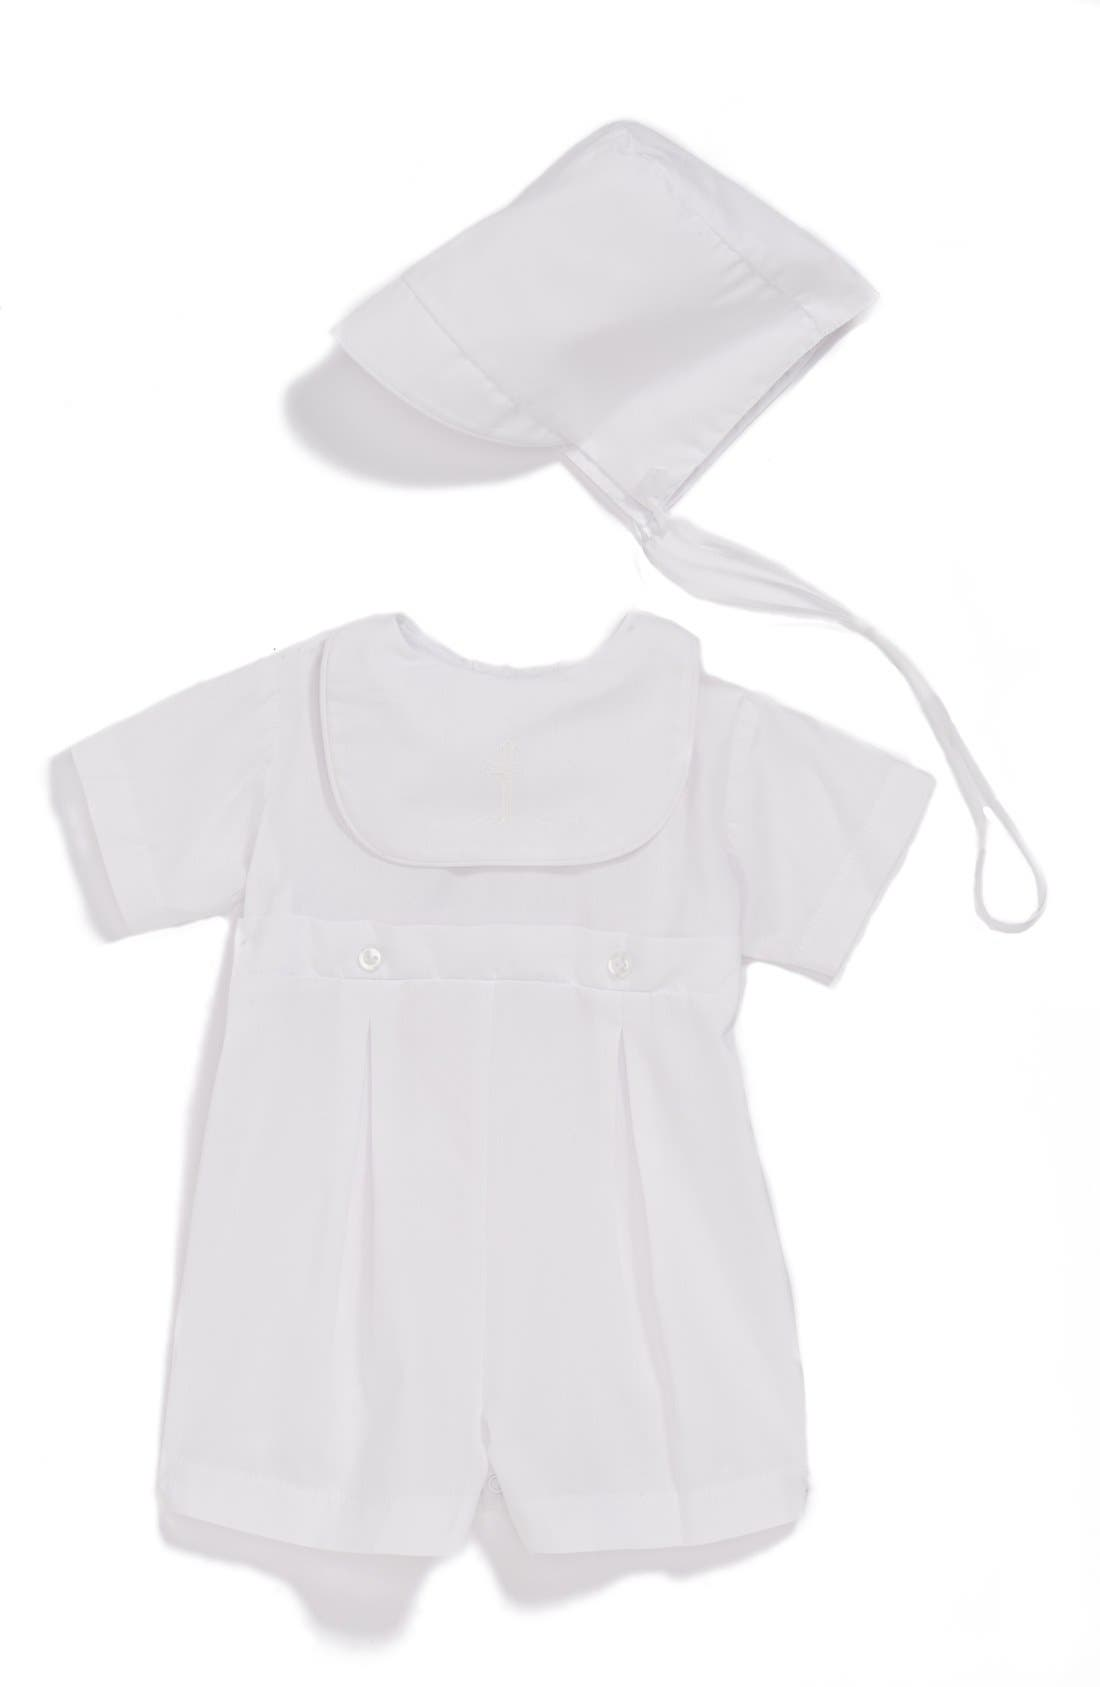 Main Image - Little Things Mean a Lot Bib Front Christening Romper and Bonnet Set (Baby)